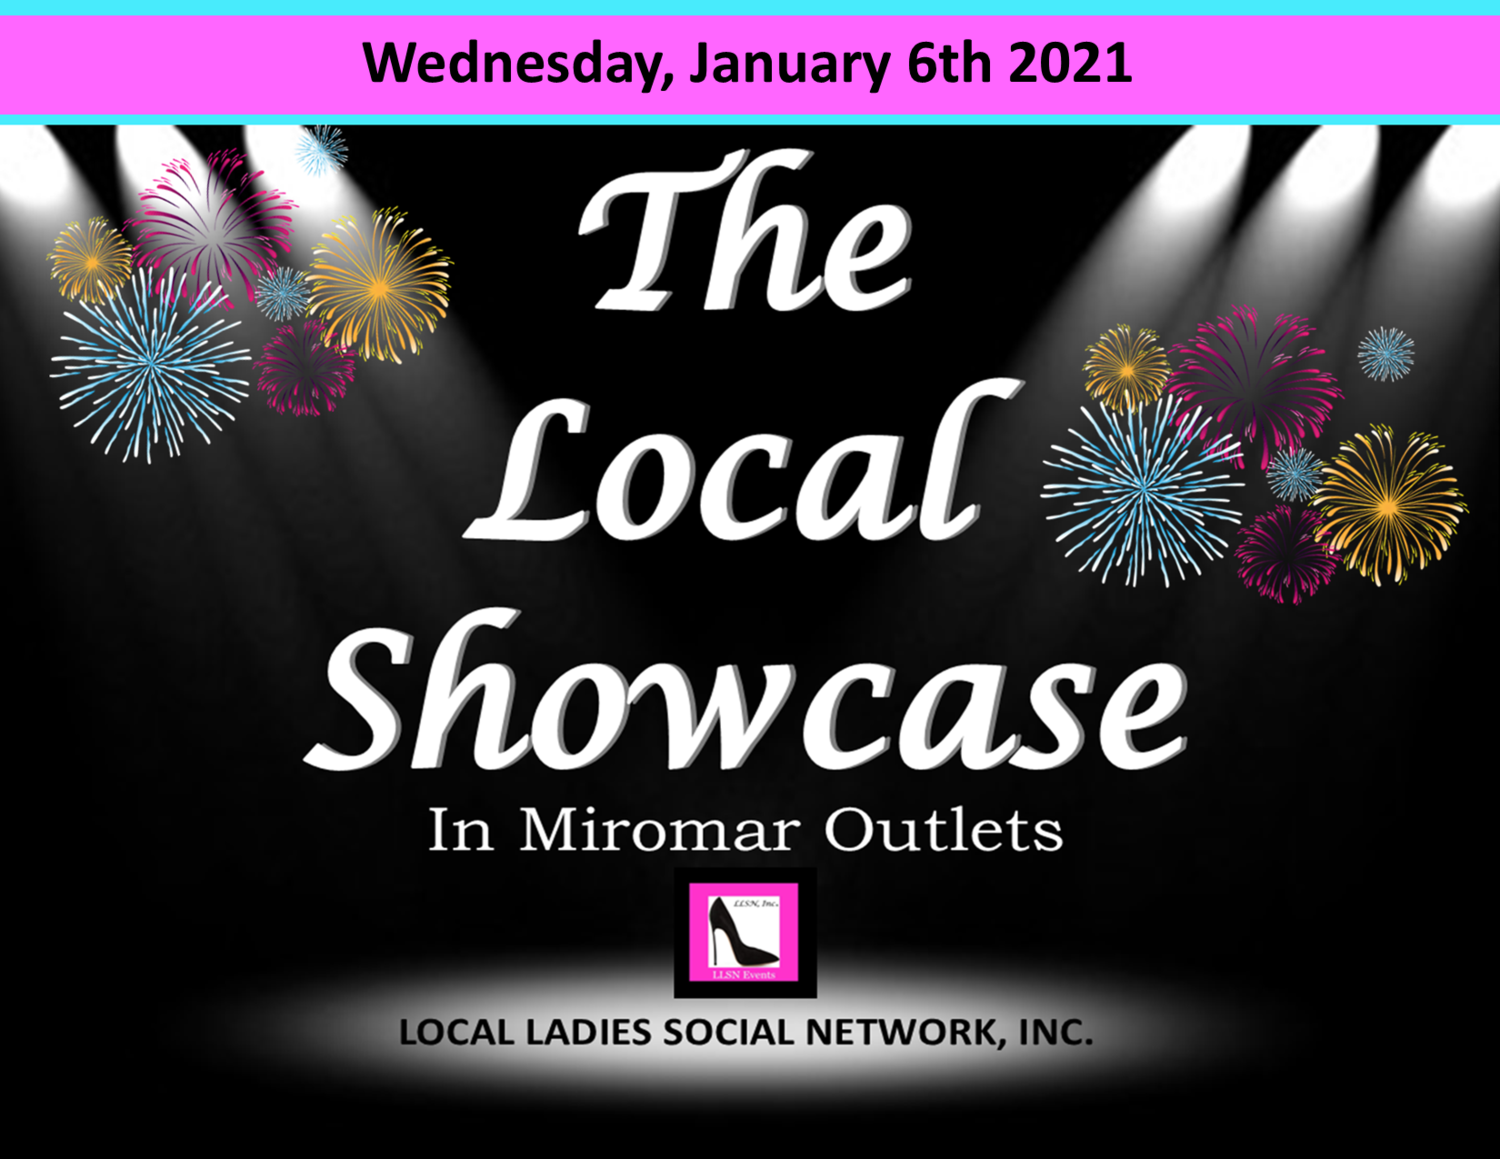 Wednesday, January 6th 11am-7pm